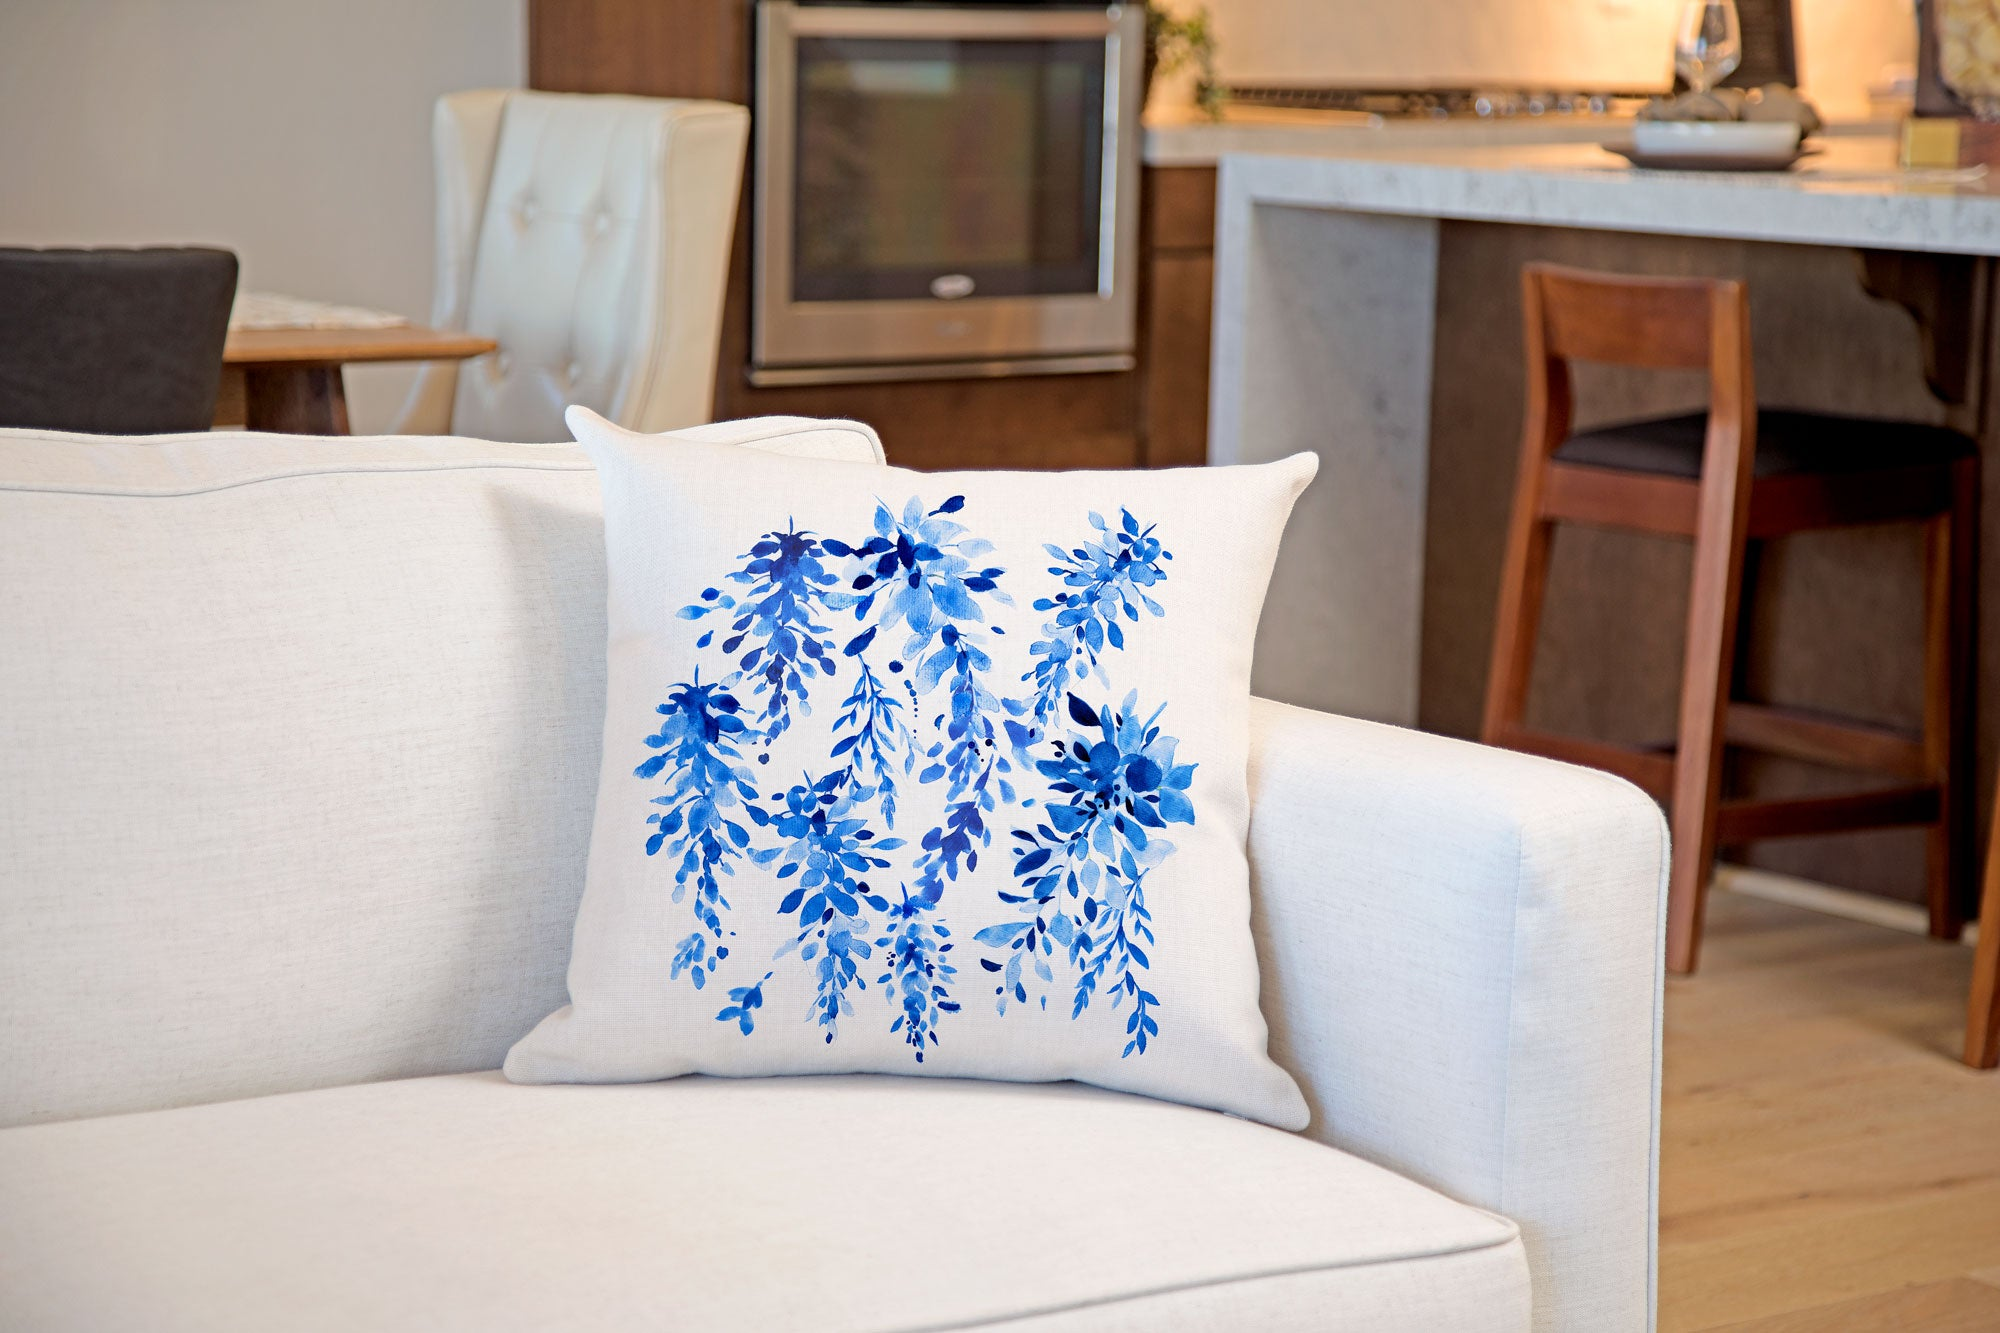 Blue Wisteria Floral Throw Pillow Cover - Decorative Designs Throw Pillow Cover Collection